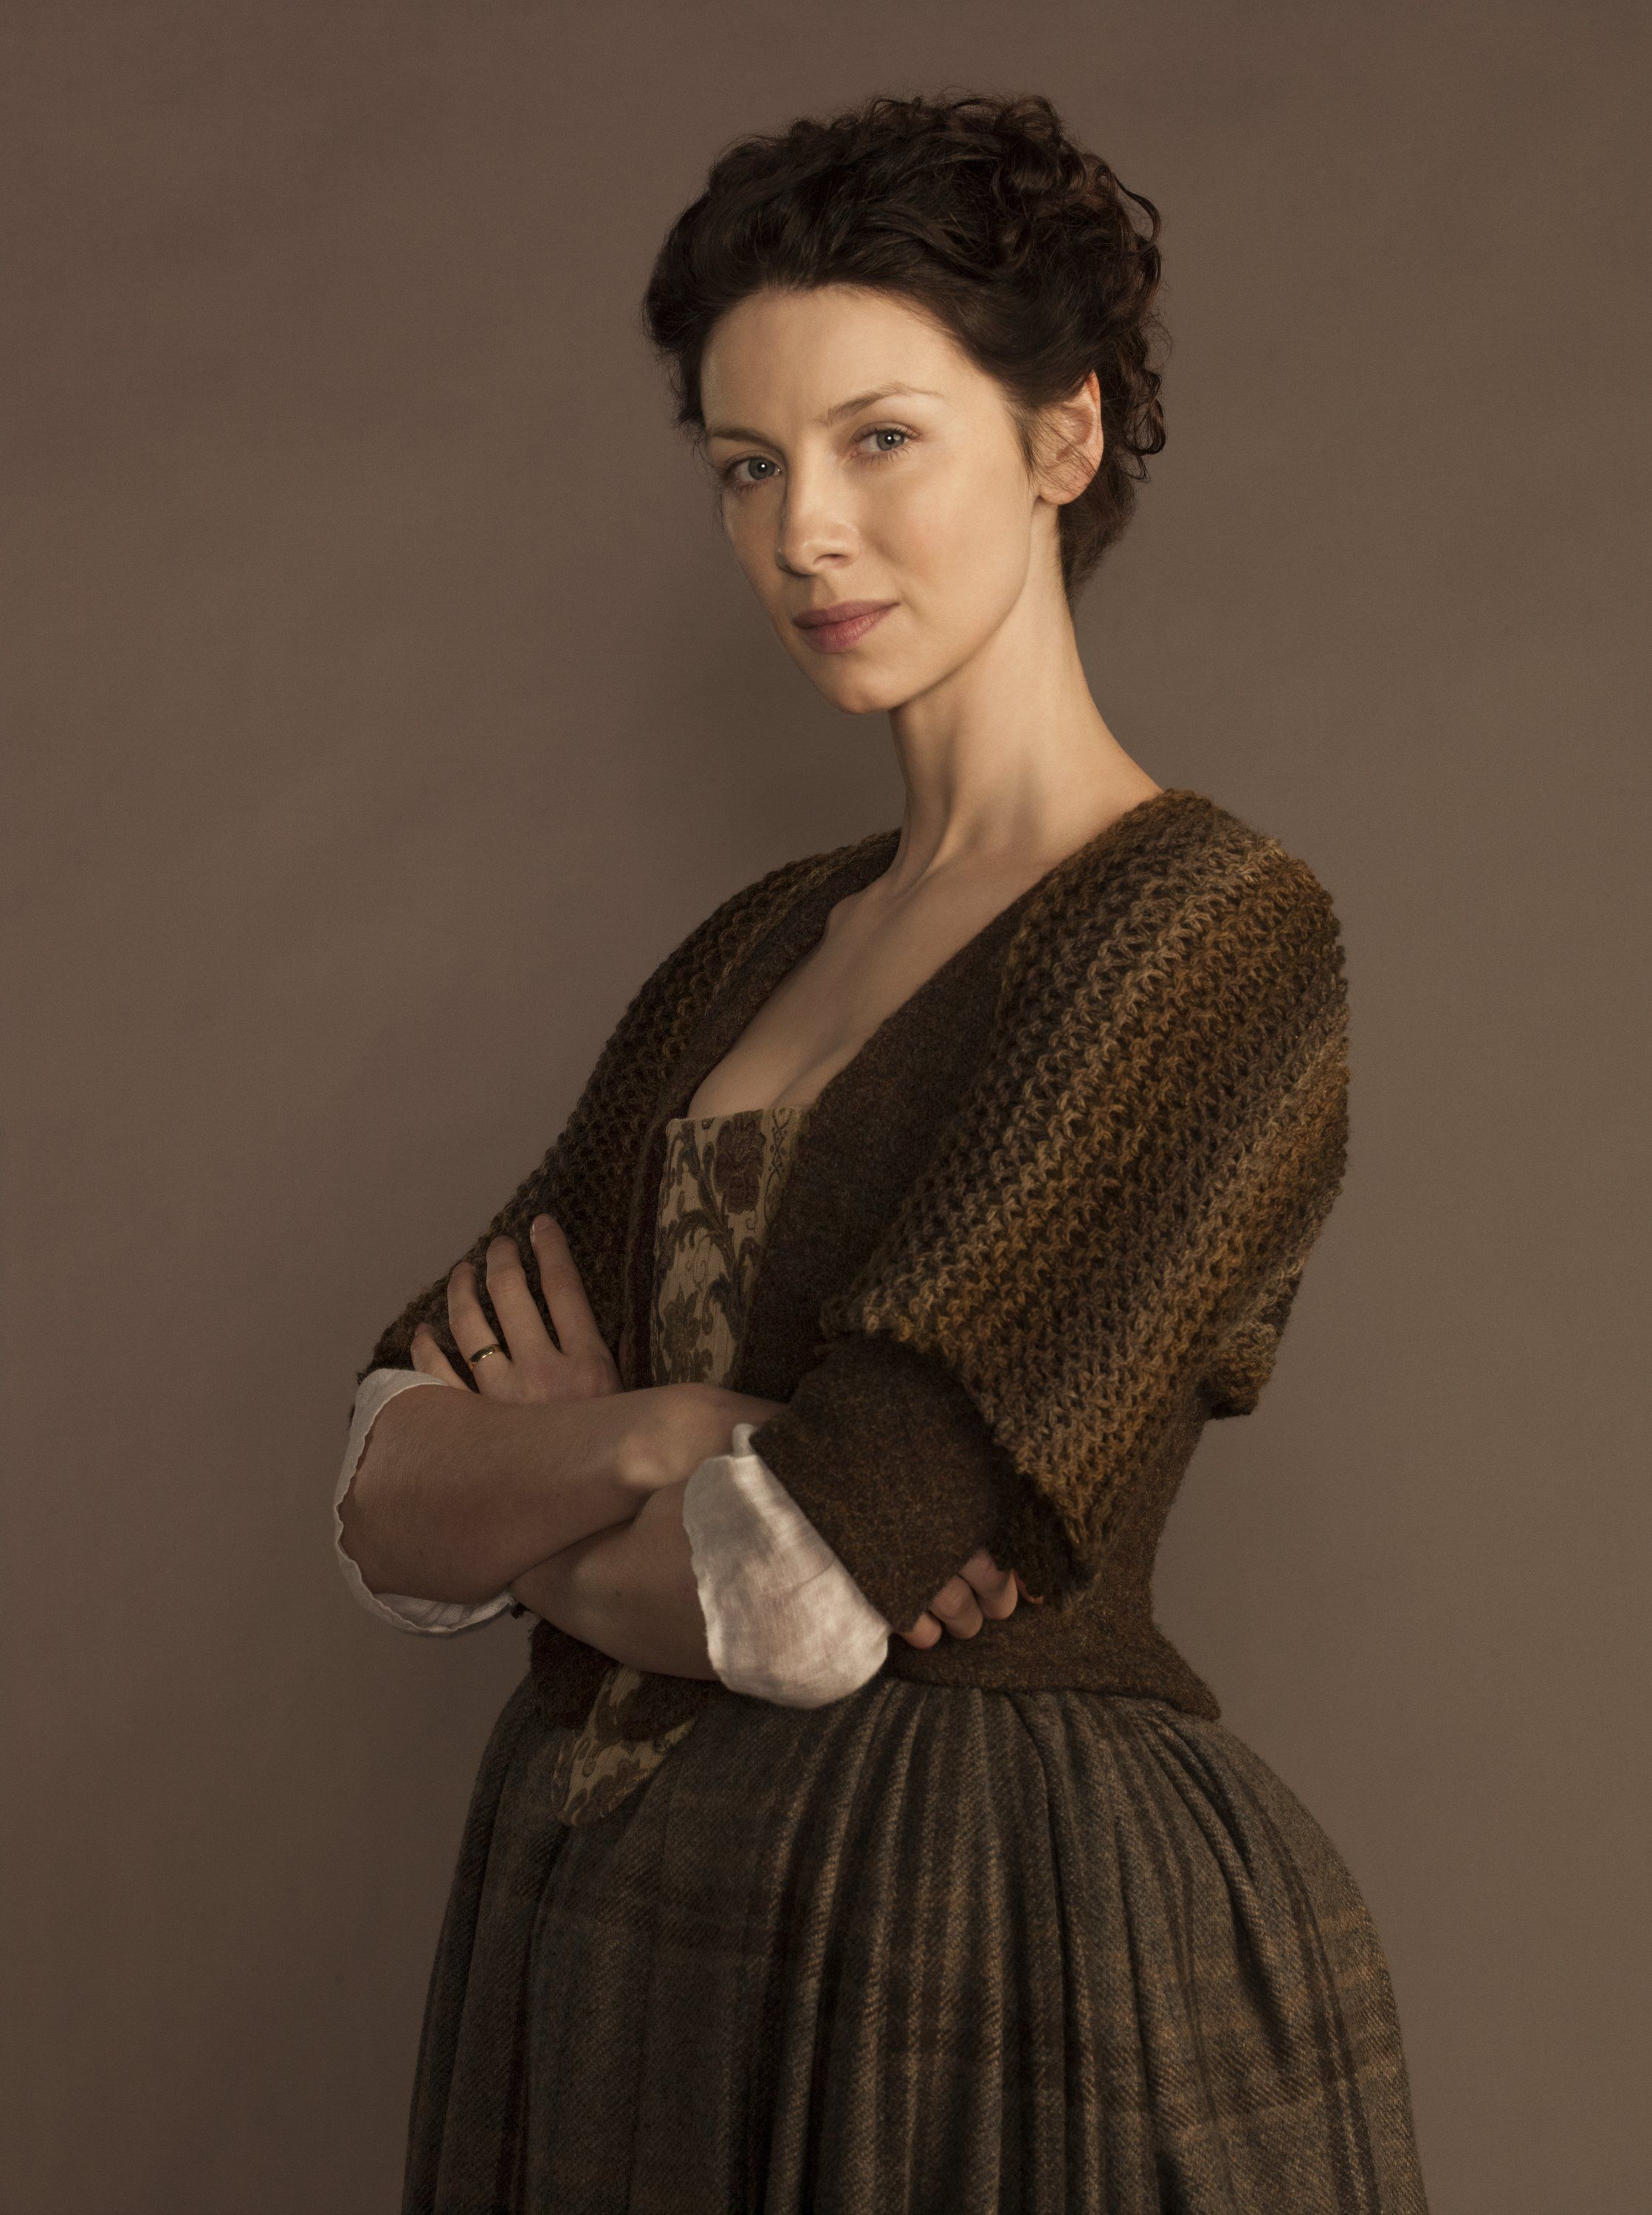 Claire S Knitted Shrug From Outlander Outlander